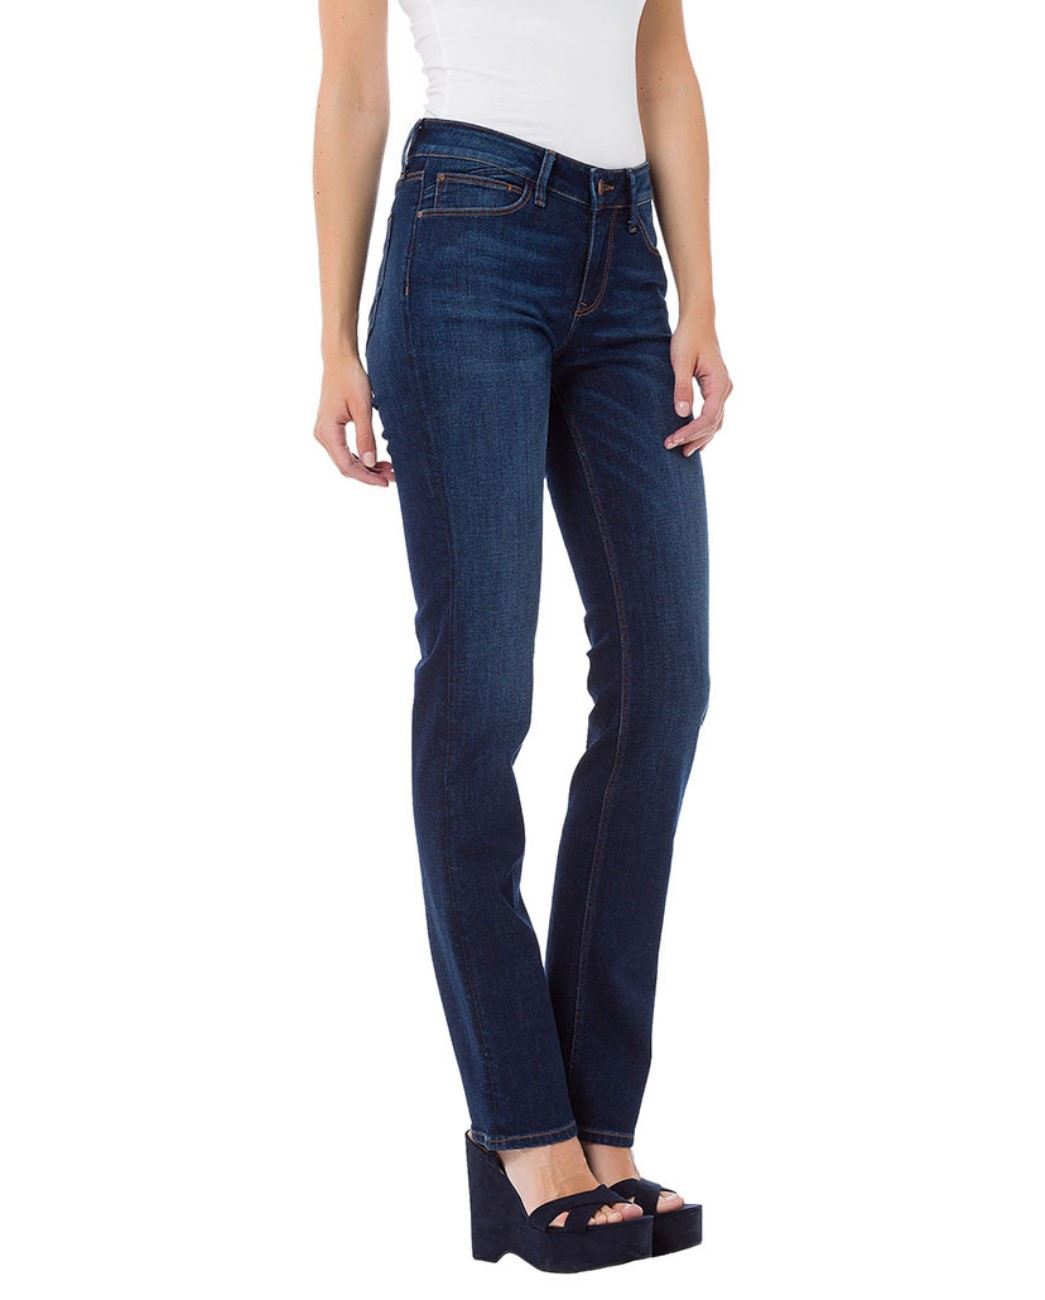 Cross Damen Jeans Rose - Regular Fit - Blau - Dark Blue